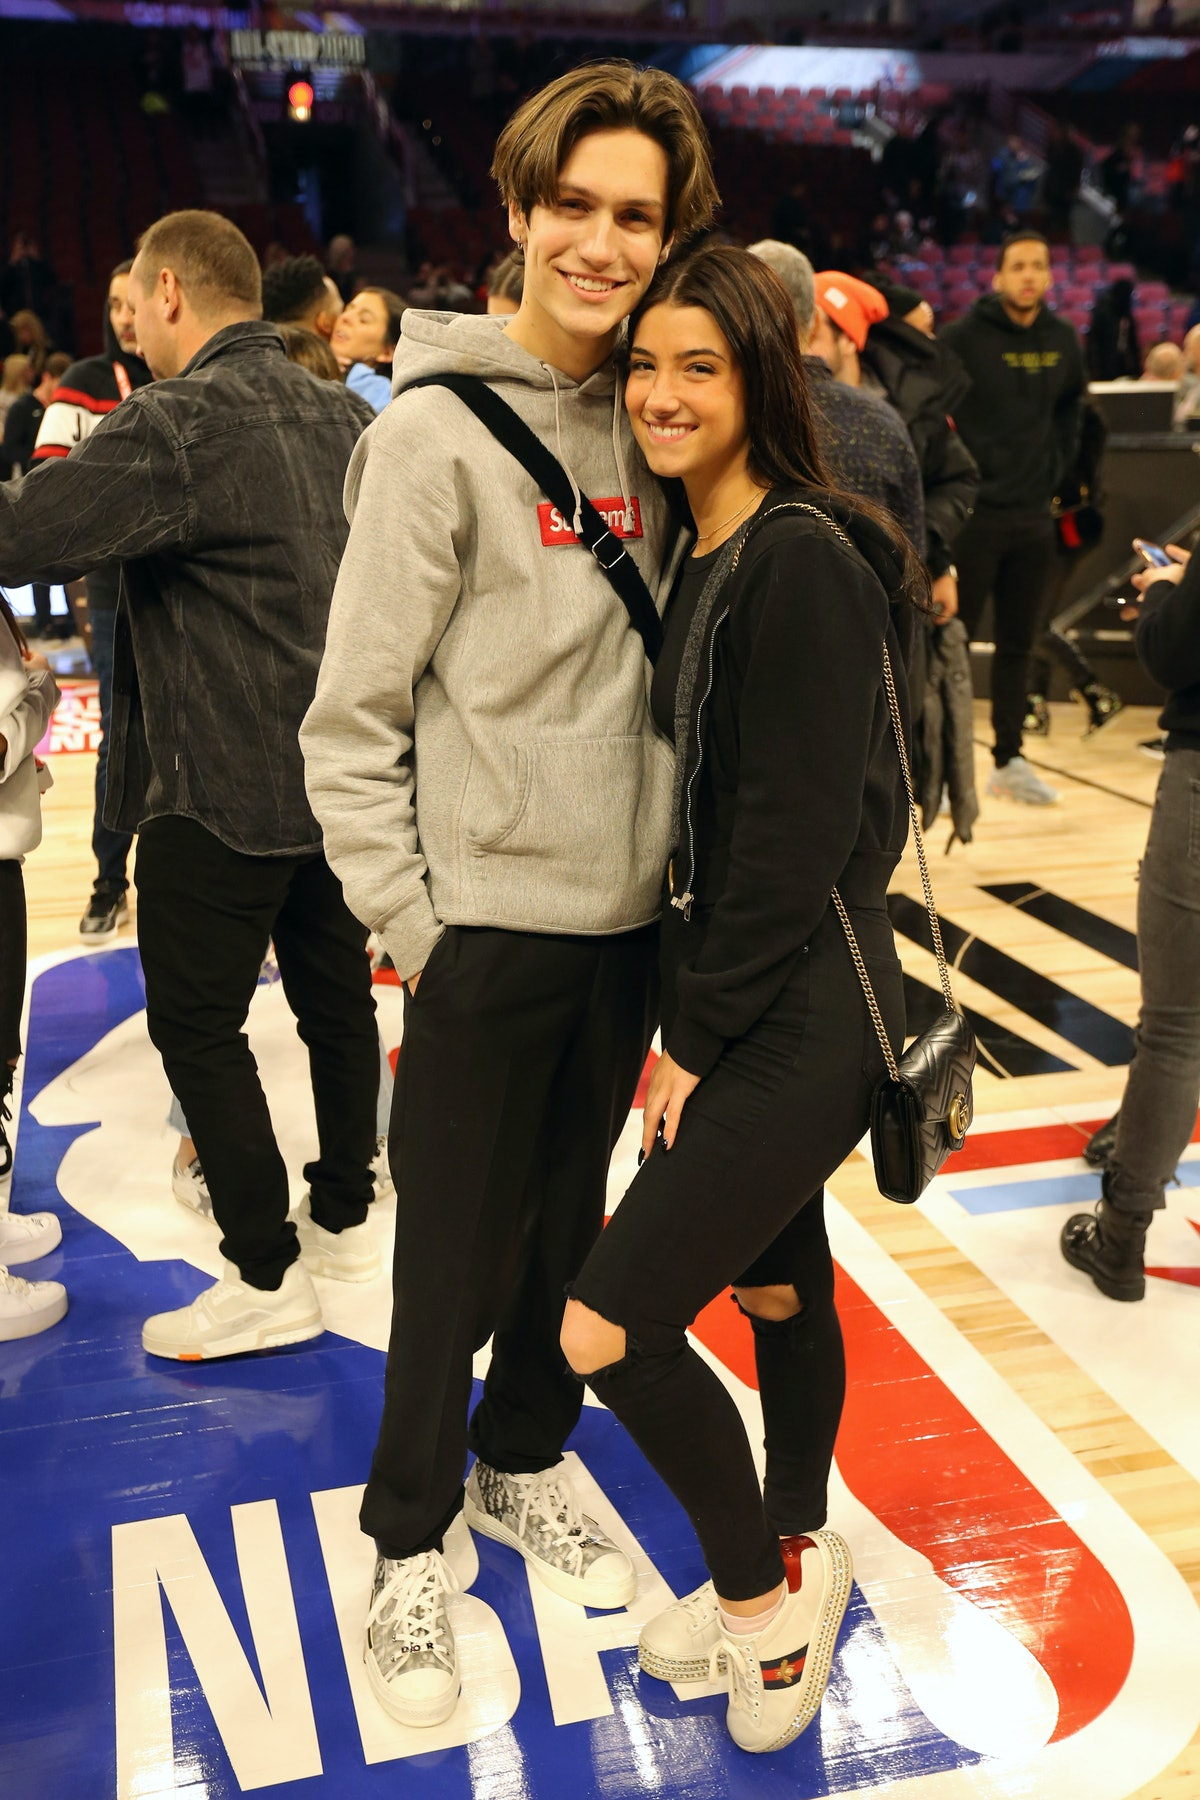 Chase Hudson and Charli C'Amelio attend an NBA game.